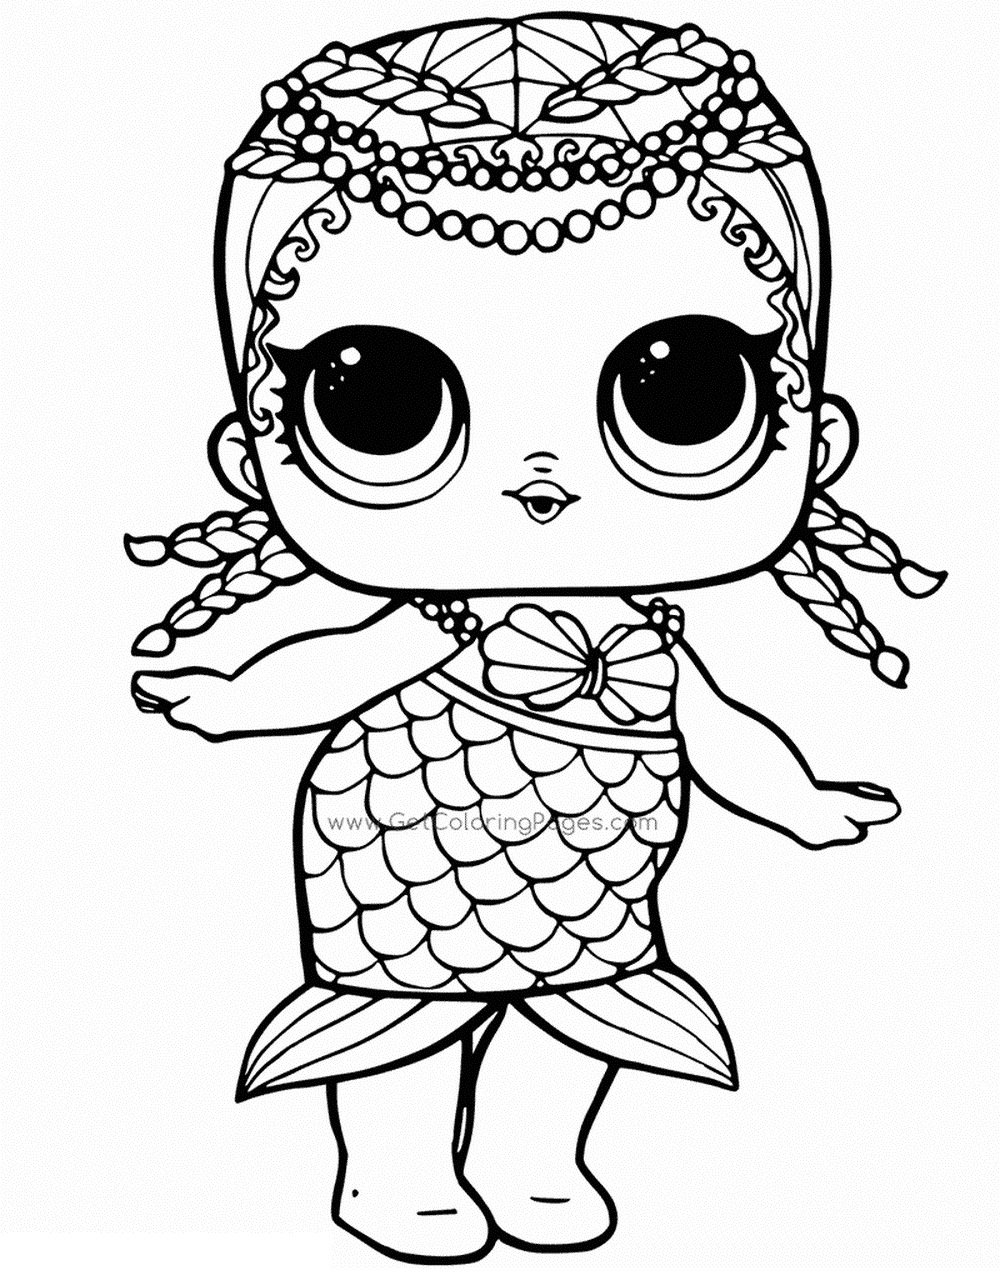 coloring images lol lol surprise coloring pages to download and print for free images lol coloring